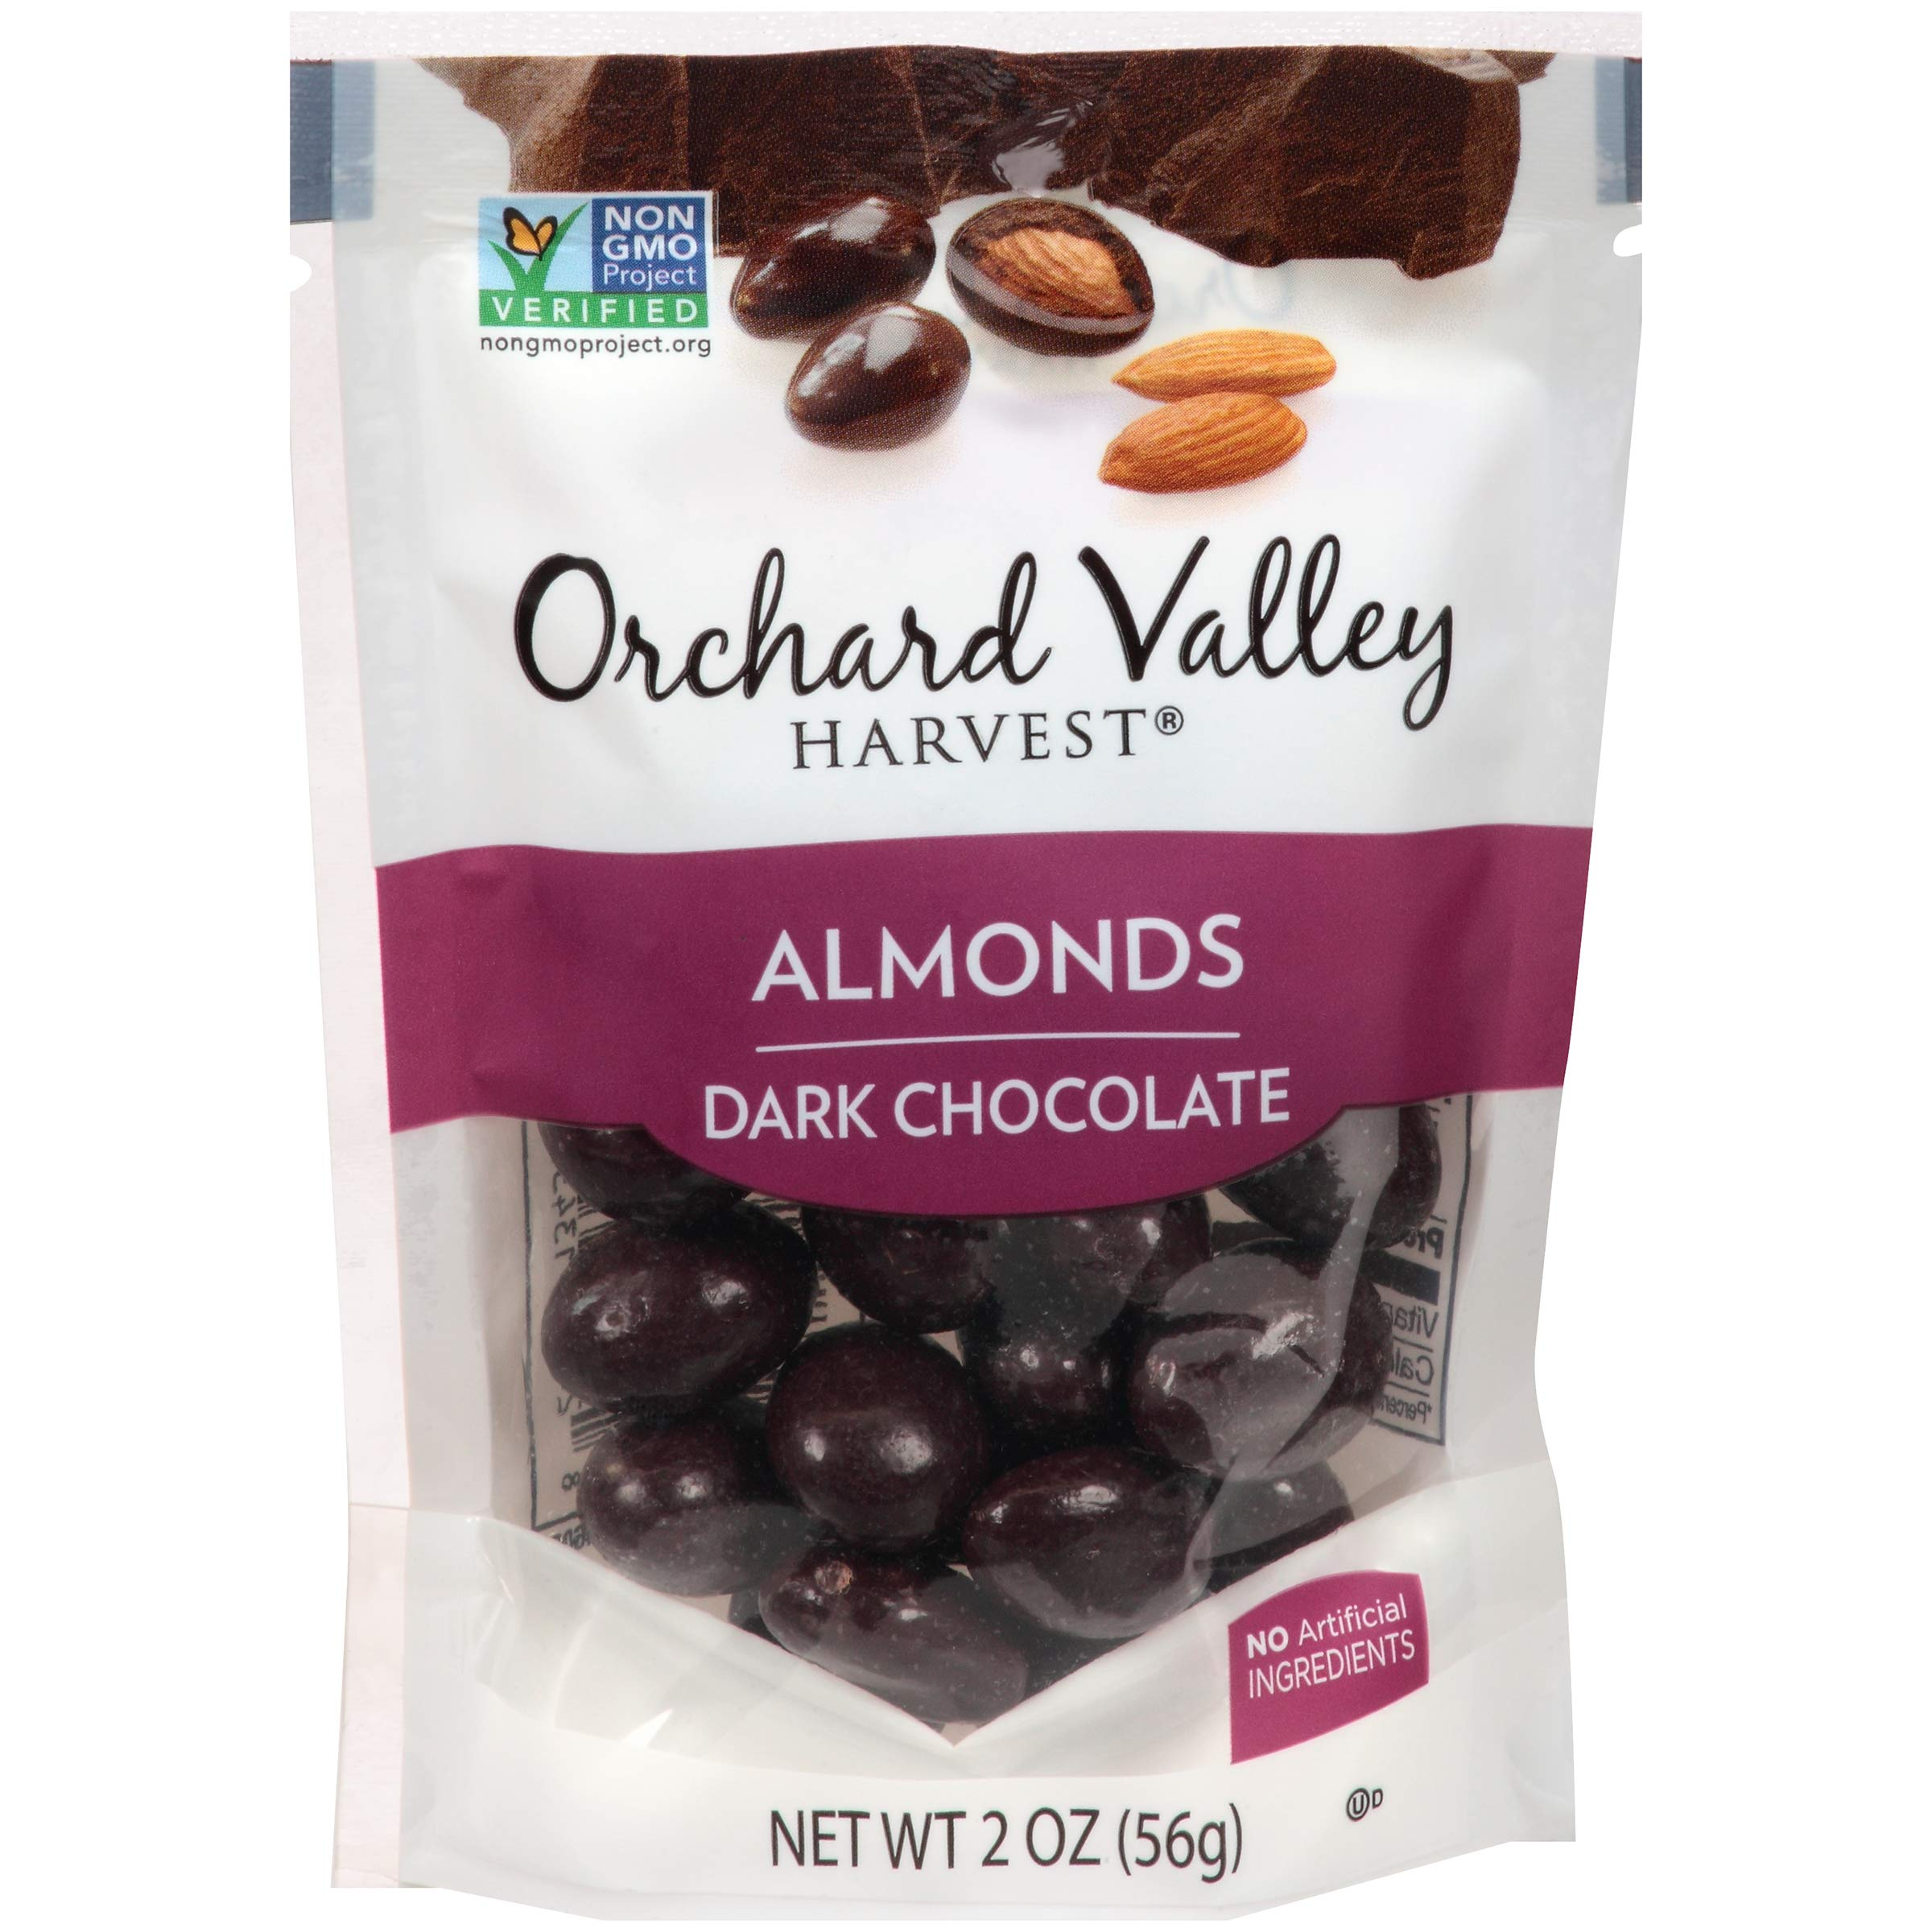 ORCHARD VALLEY HARVEST DARK CHOCOLATE ALMONDS 30 PACK OF 2 OUNCES